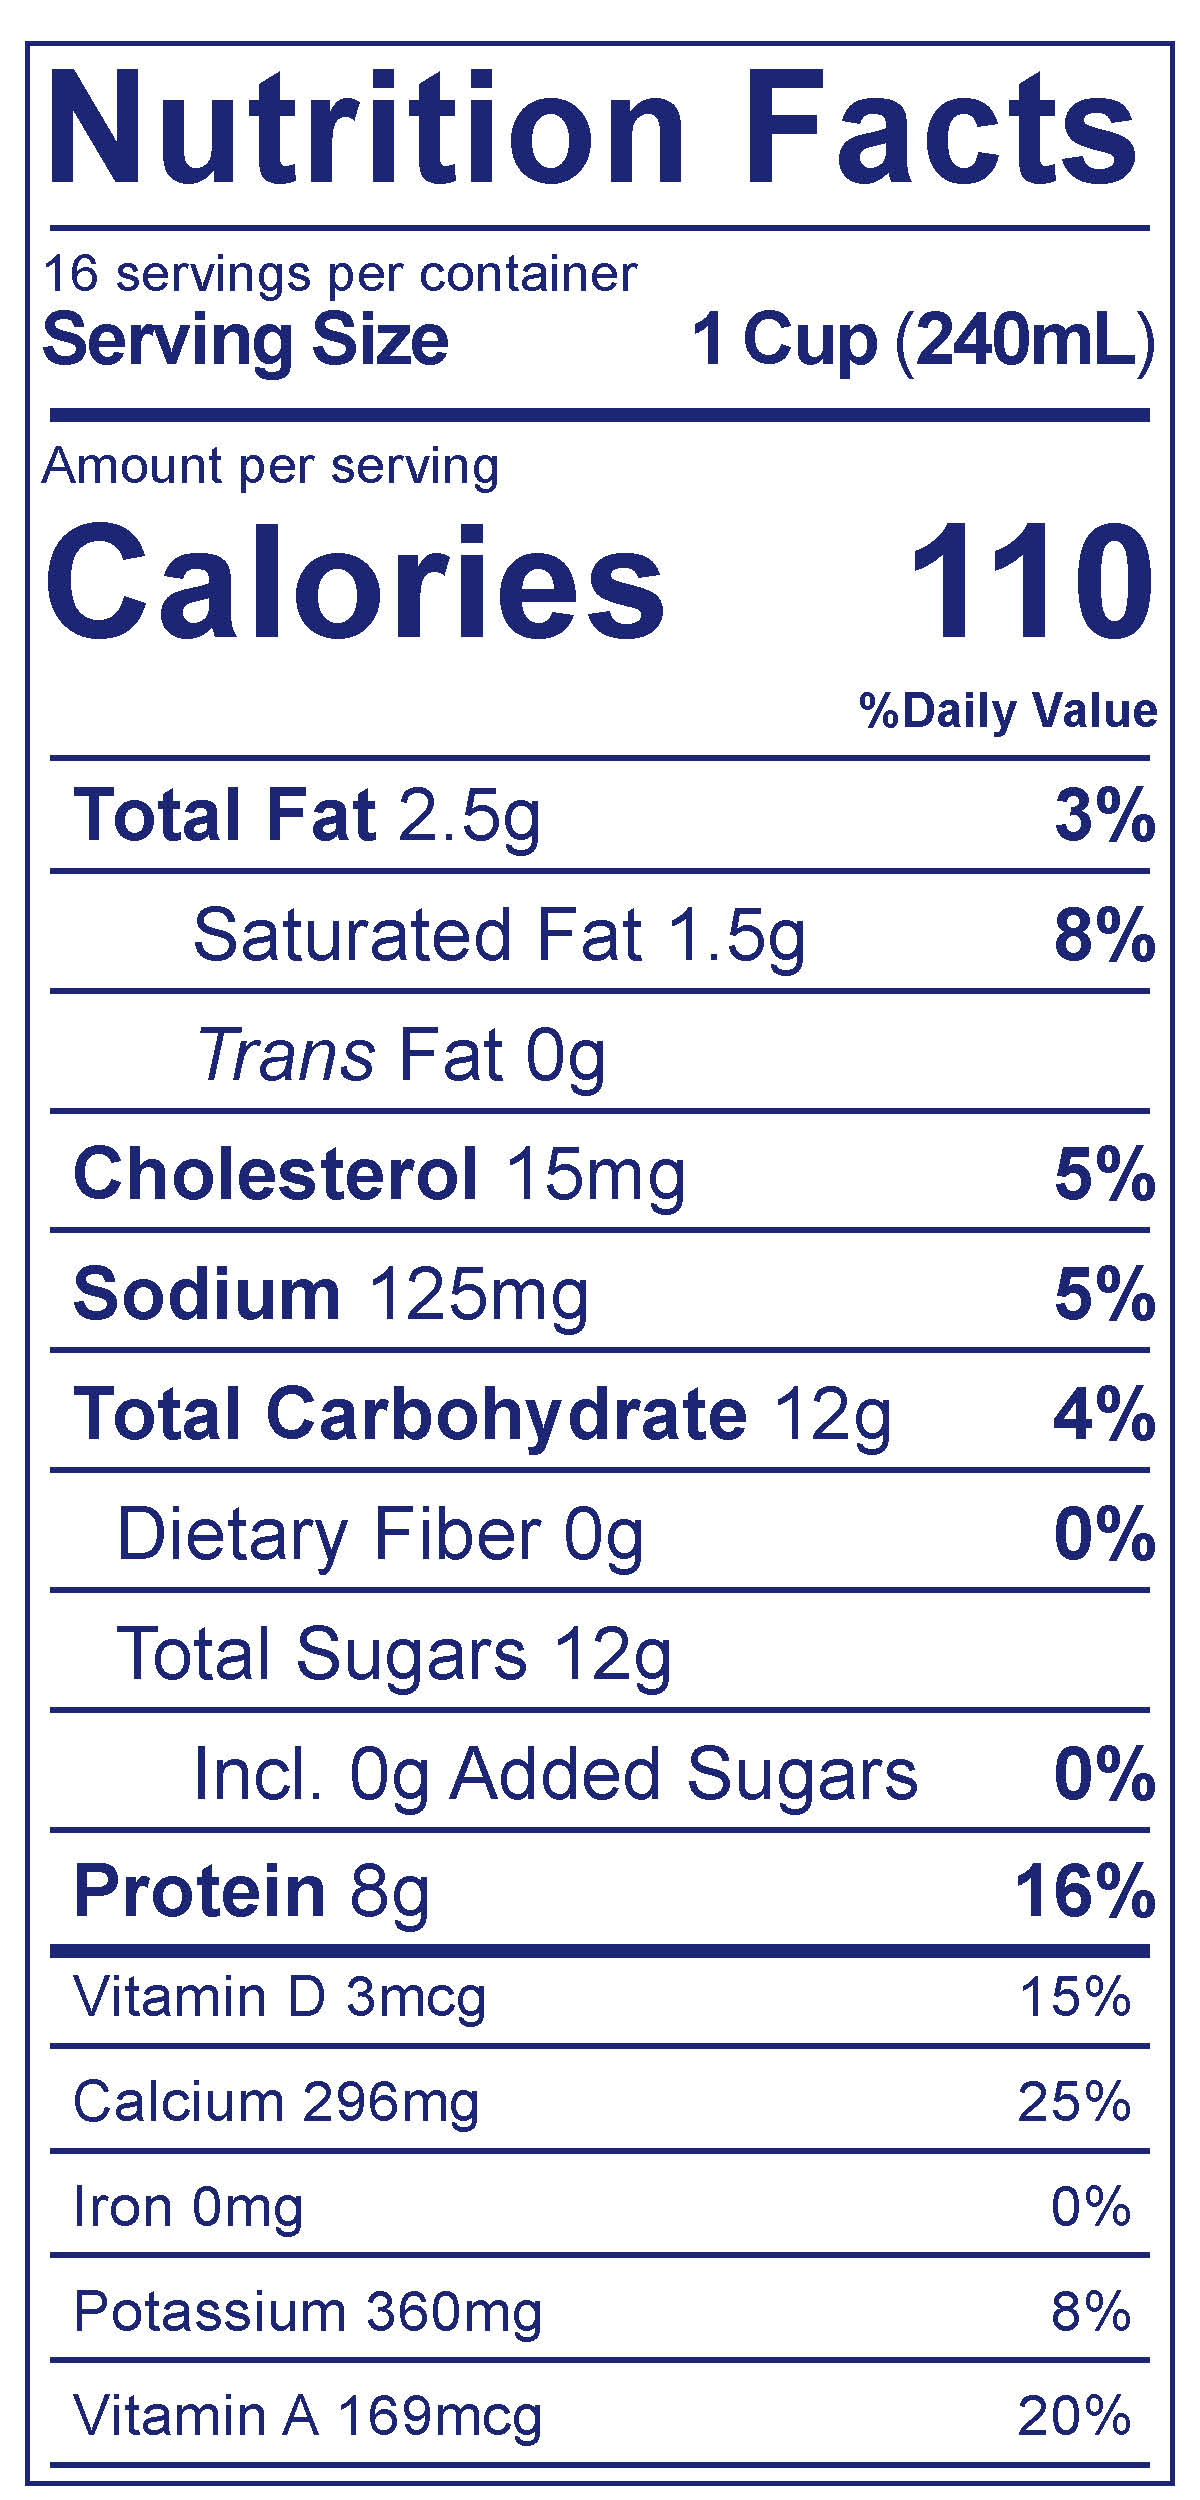 Low Fat 1% Milk - Nutrition Facts